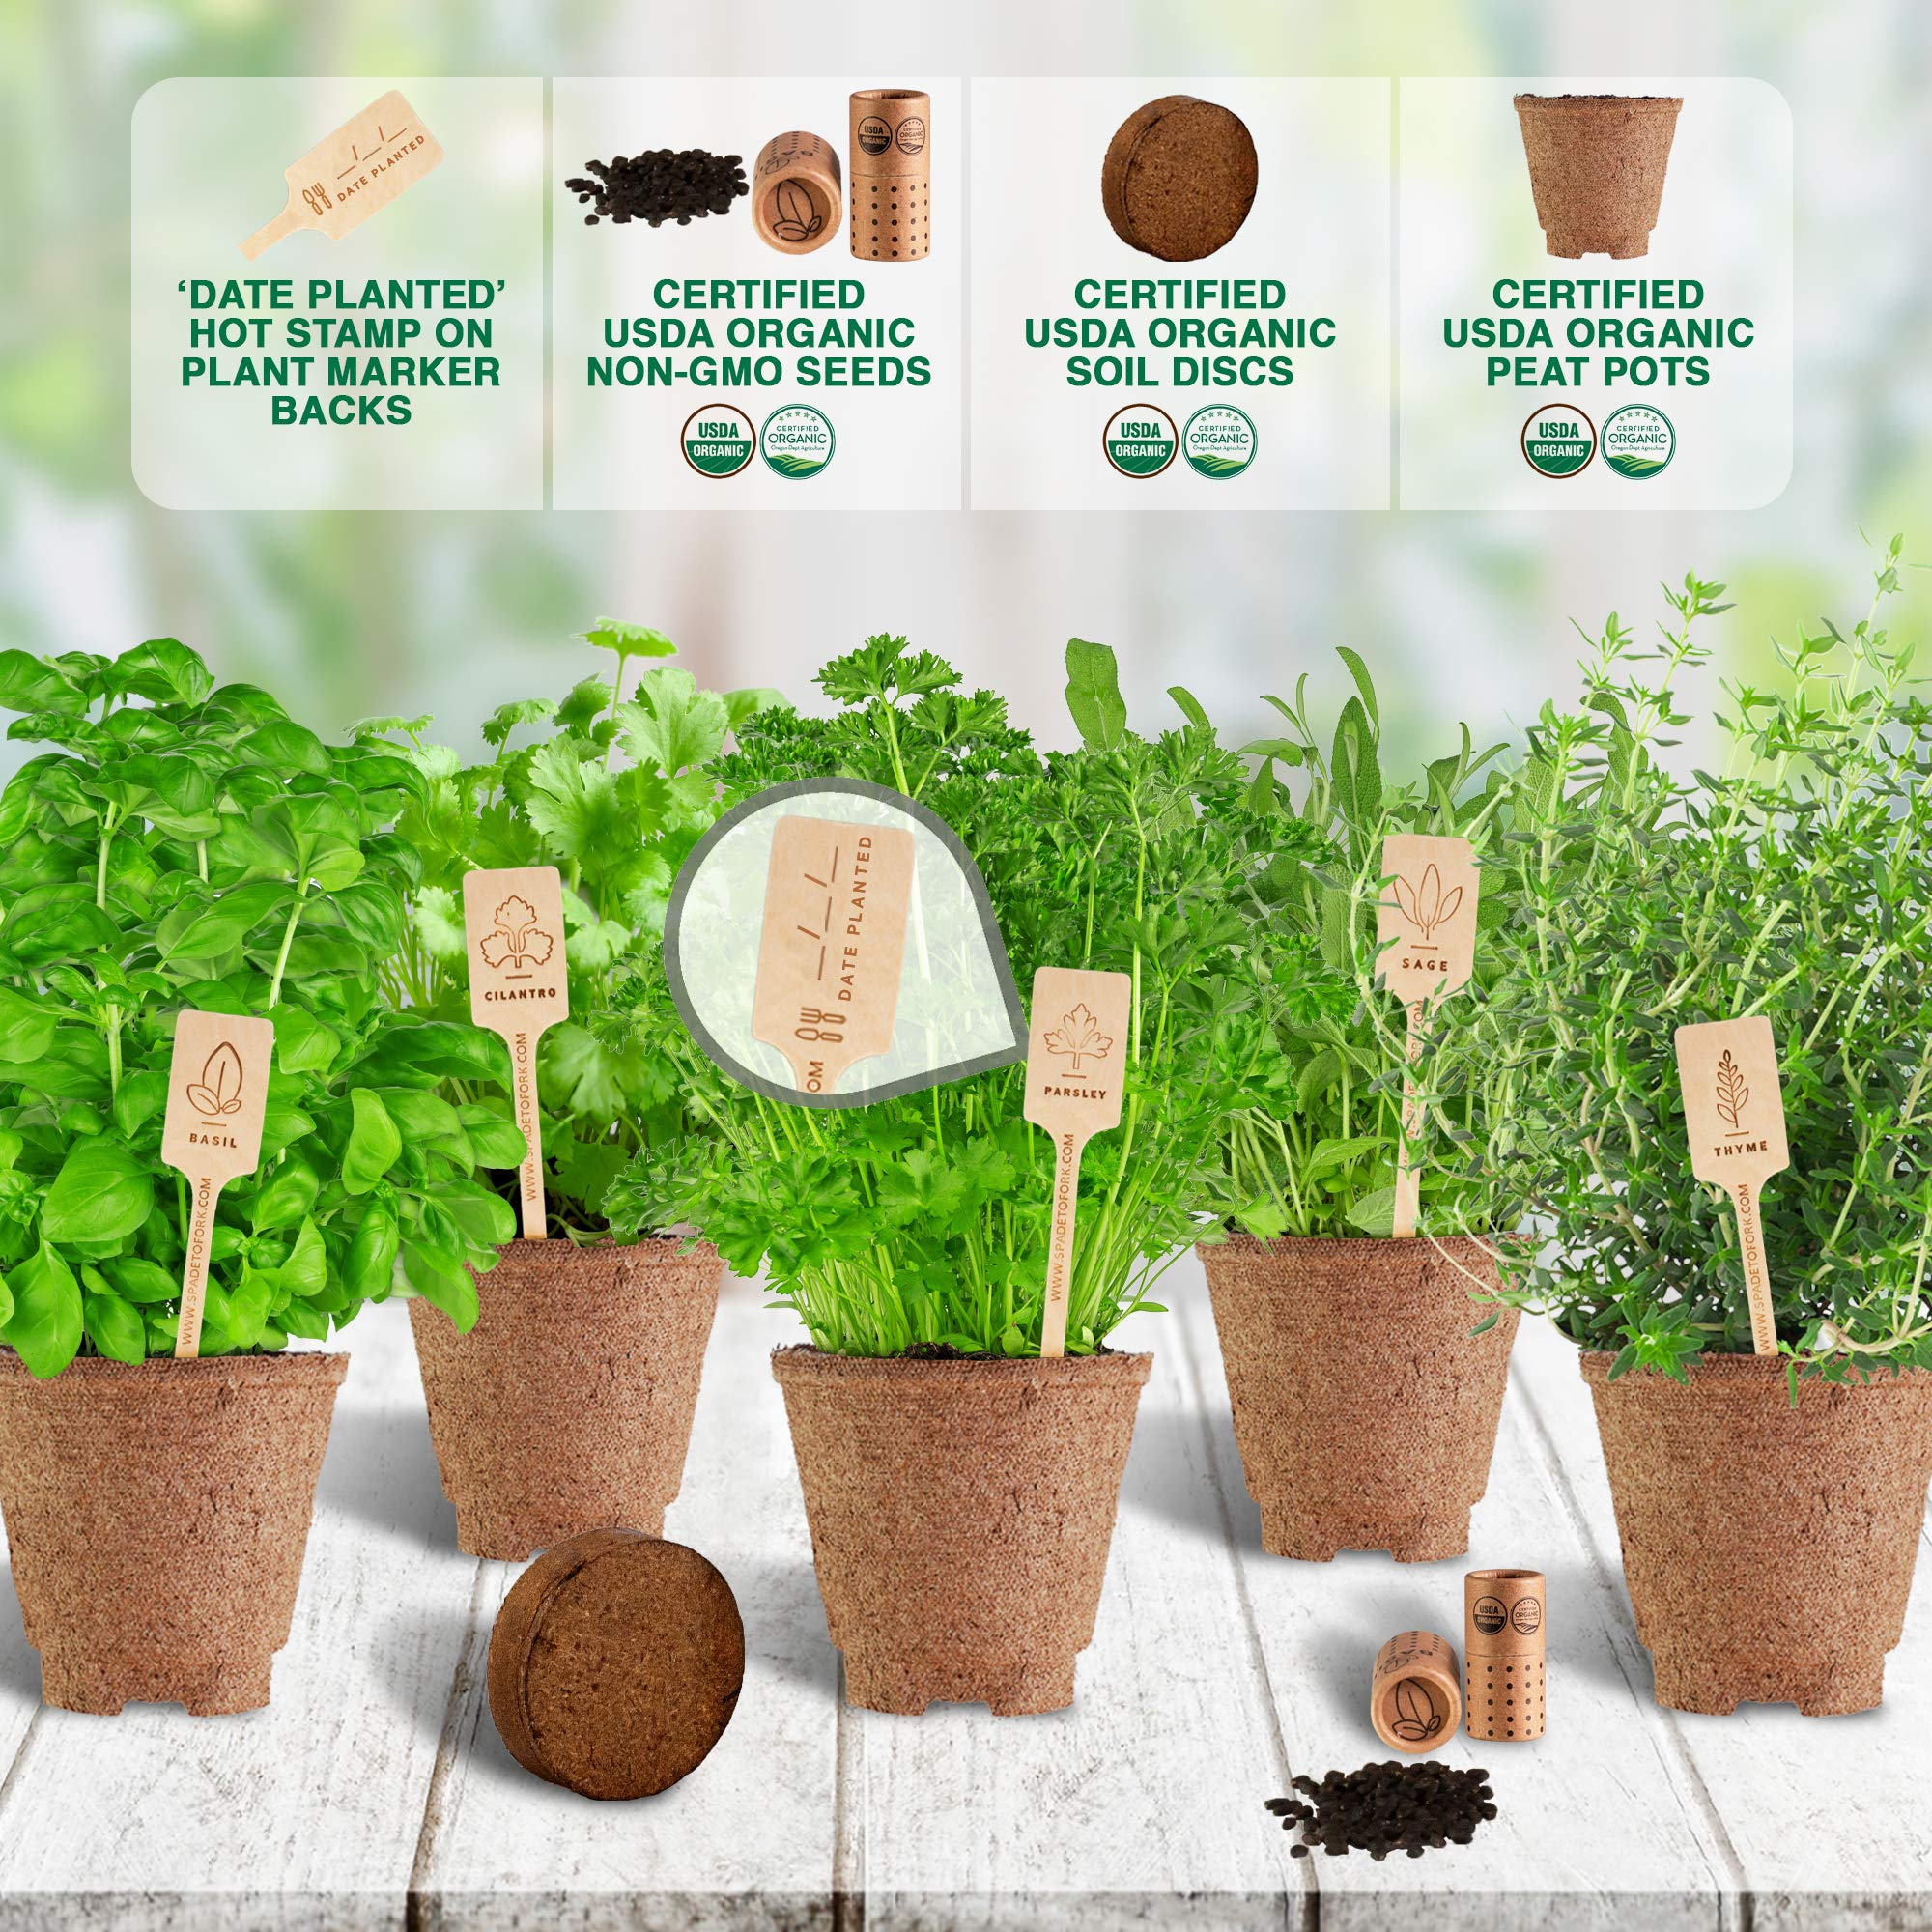 Indoor Herb Garden Starter Kit - Certified 100% USDA Organic Non GMO - Potting Soil, Peat Pots, 5 Herb Seed Basil, Cilantro, Parsley, Sage, Thyme - DIY Kitchen Grow Kit for Growing Herb Seeds Indoors by Spade To Fork (Image #4)